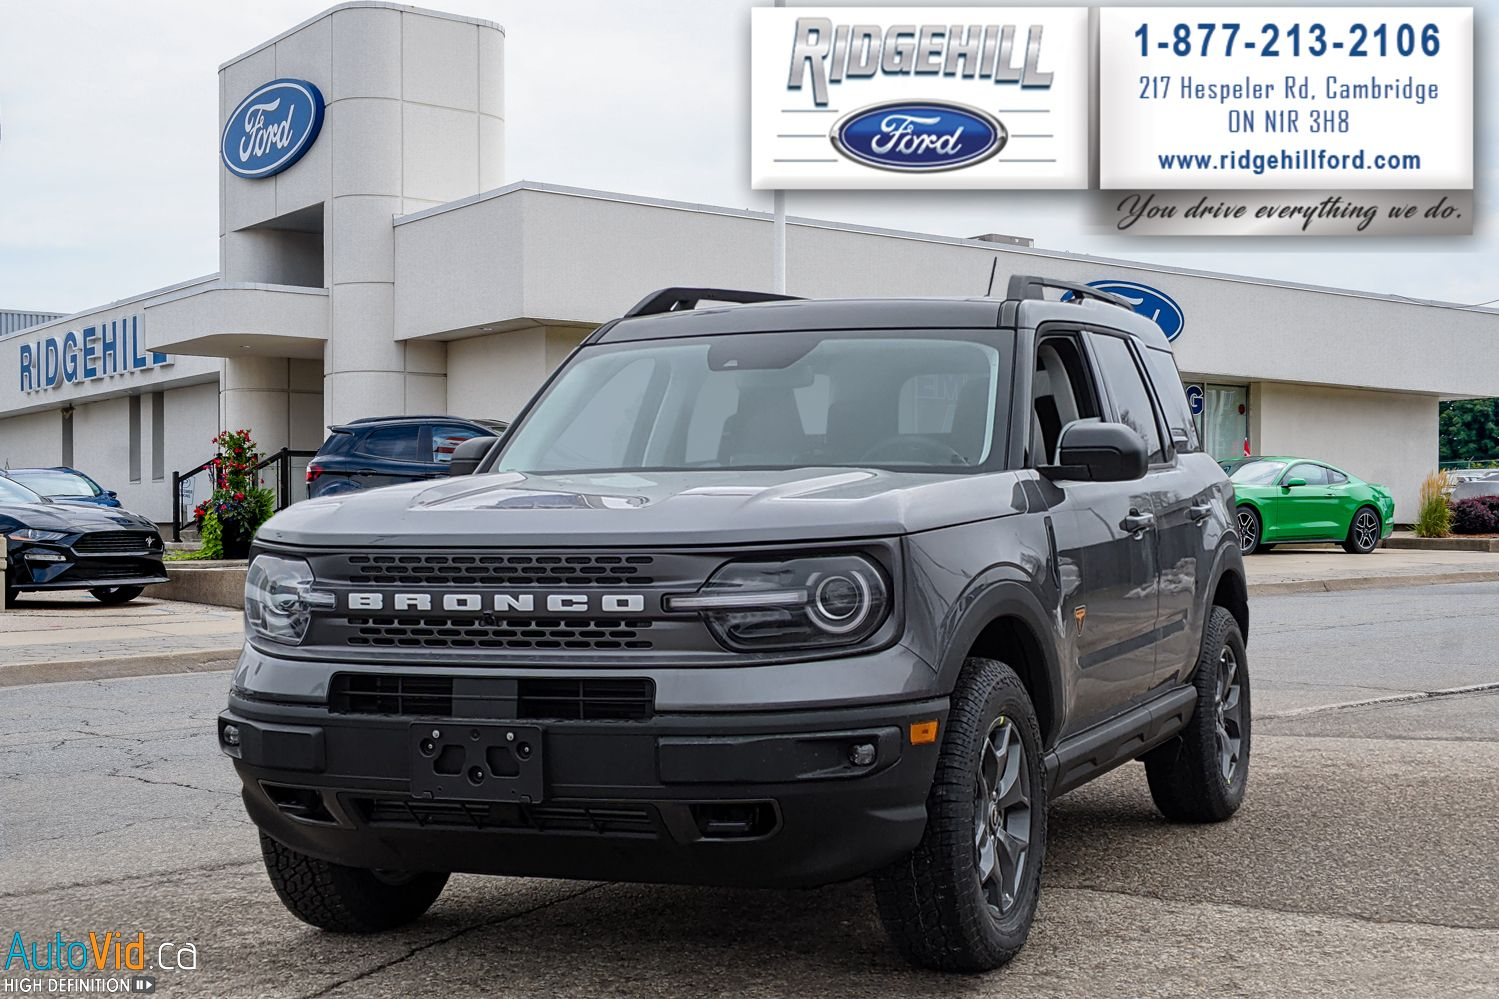 2021 Ford Bronco Sport Image